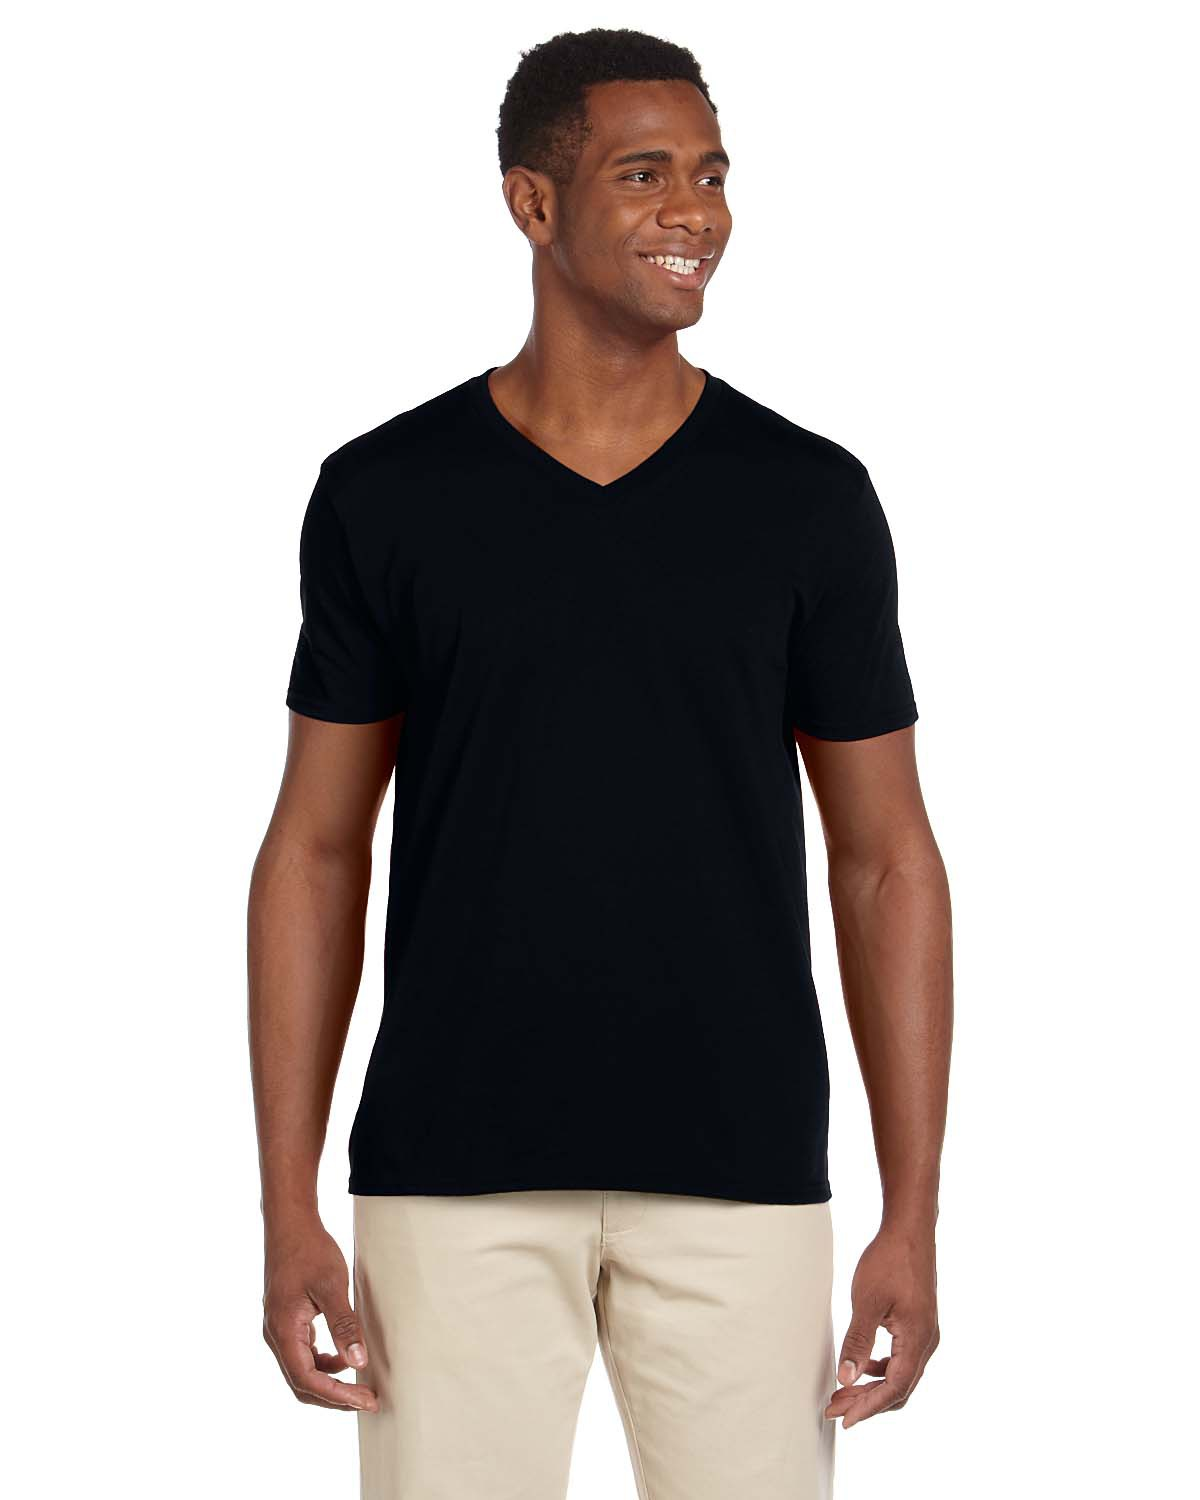 db08cb79 Gildan 64V00-Softstyle V-Neck T-Shirt $5.85 - Men's T-Shirts